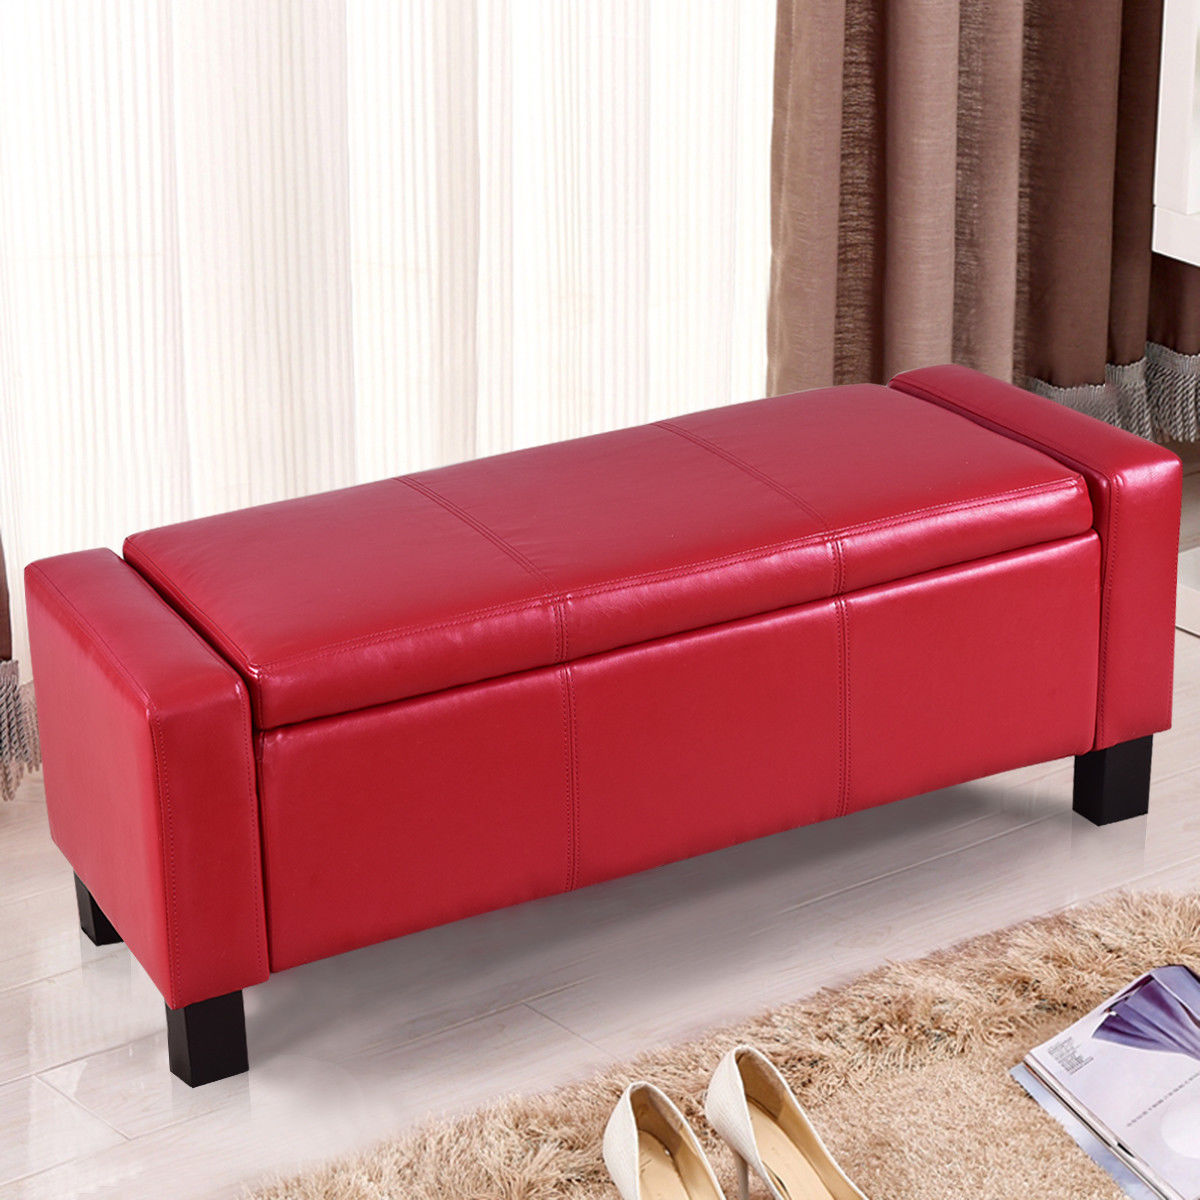 Costway PU Leather Ottoman Bench Storage Chest Footstool Organizer Chair Furniture Red